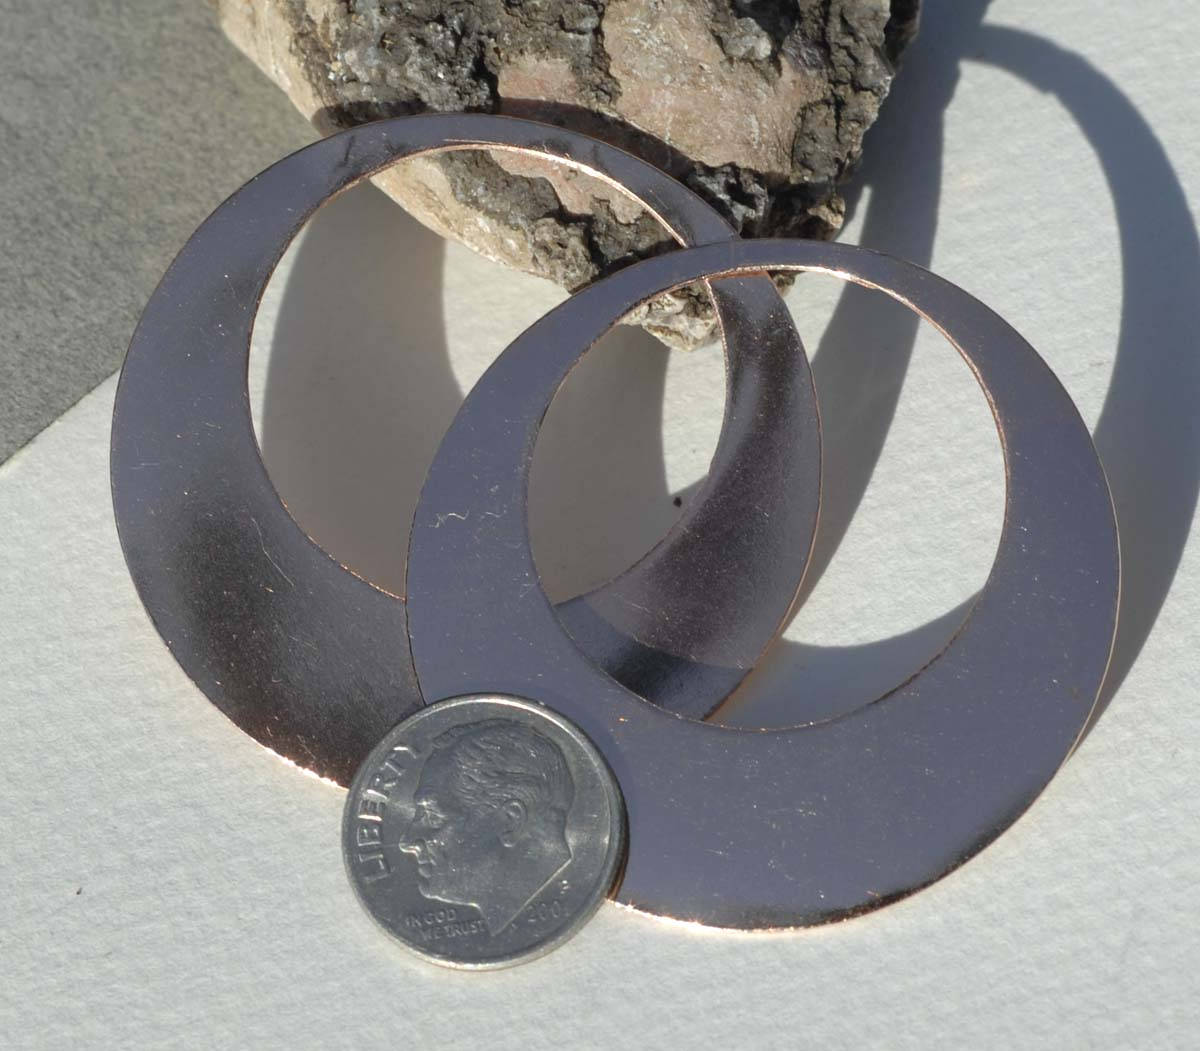 45mm Jewelry Blanks Hoops 26G for Earrings or Pendant Offset Circle for Enameling Stamping Texturing, Supplies - 4 Pieces